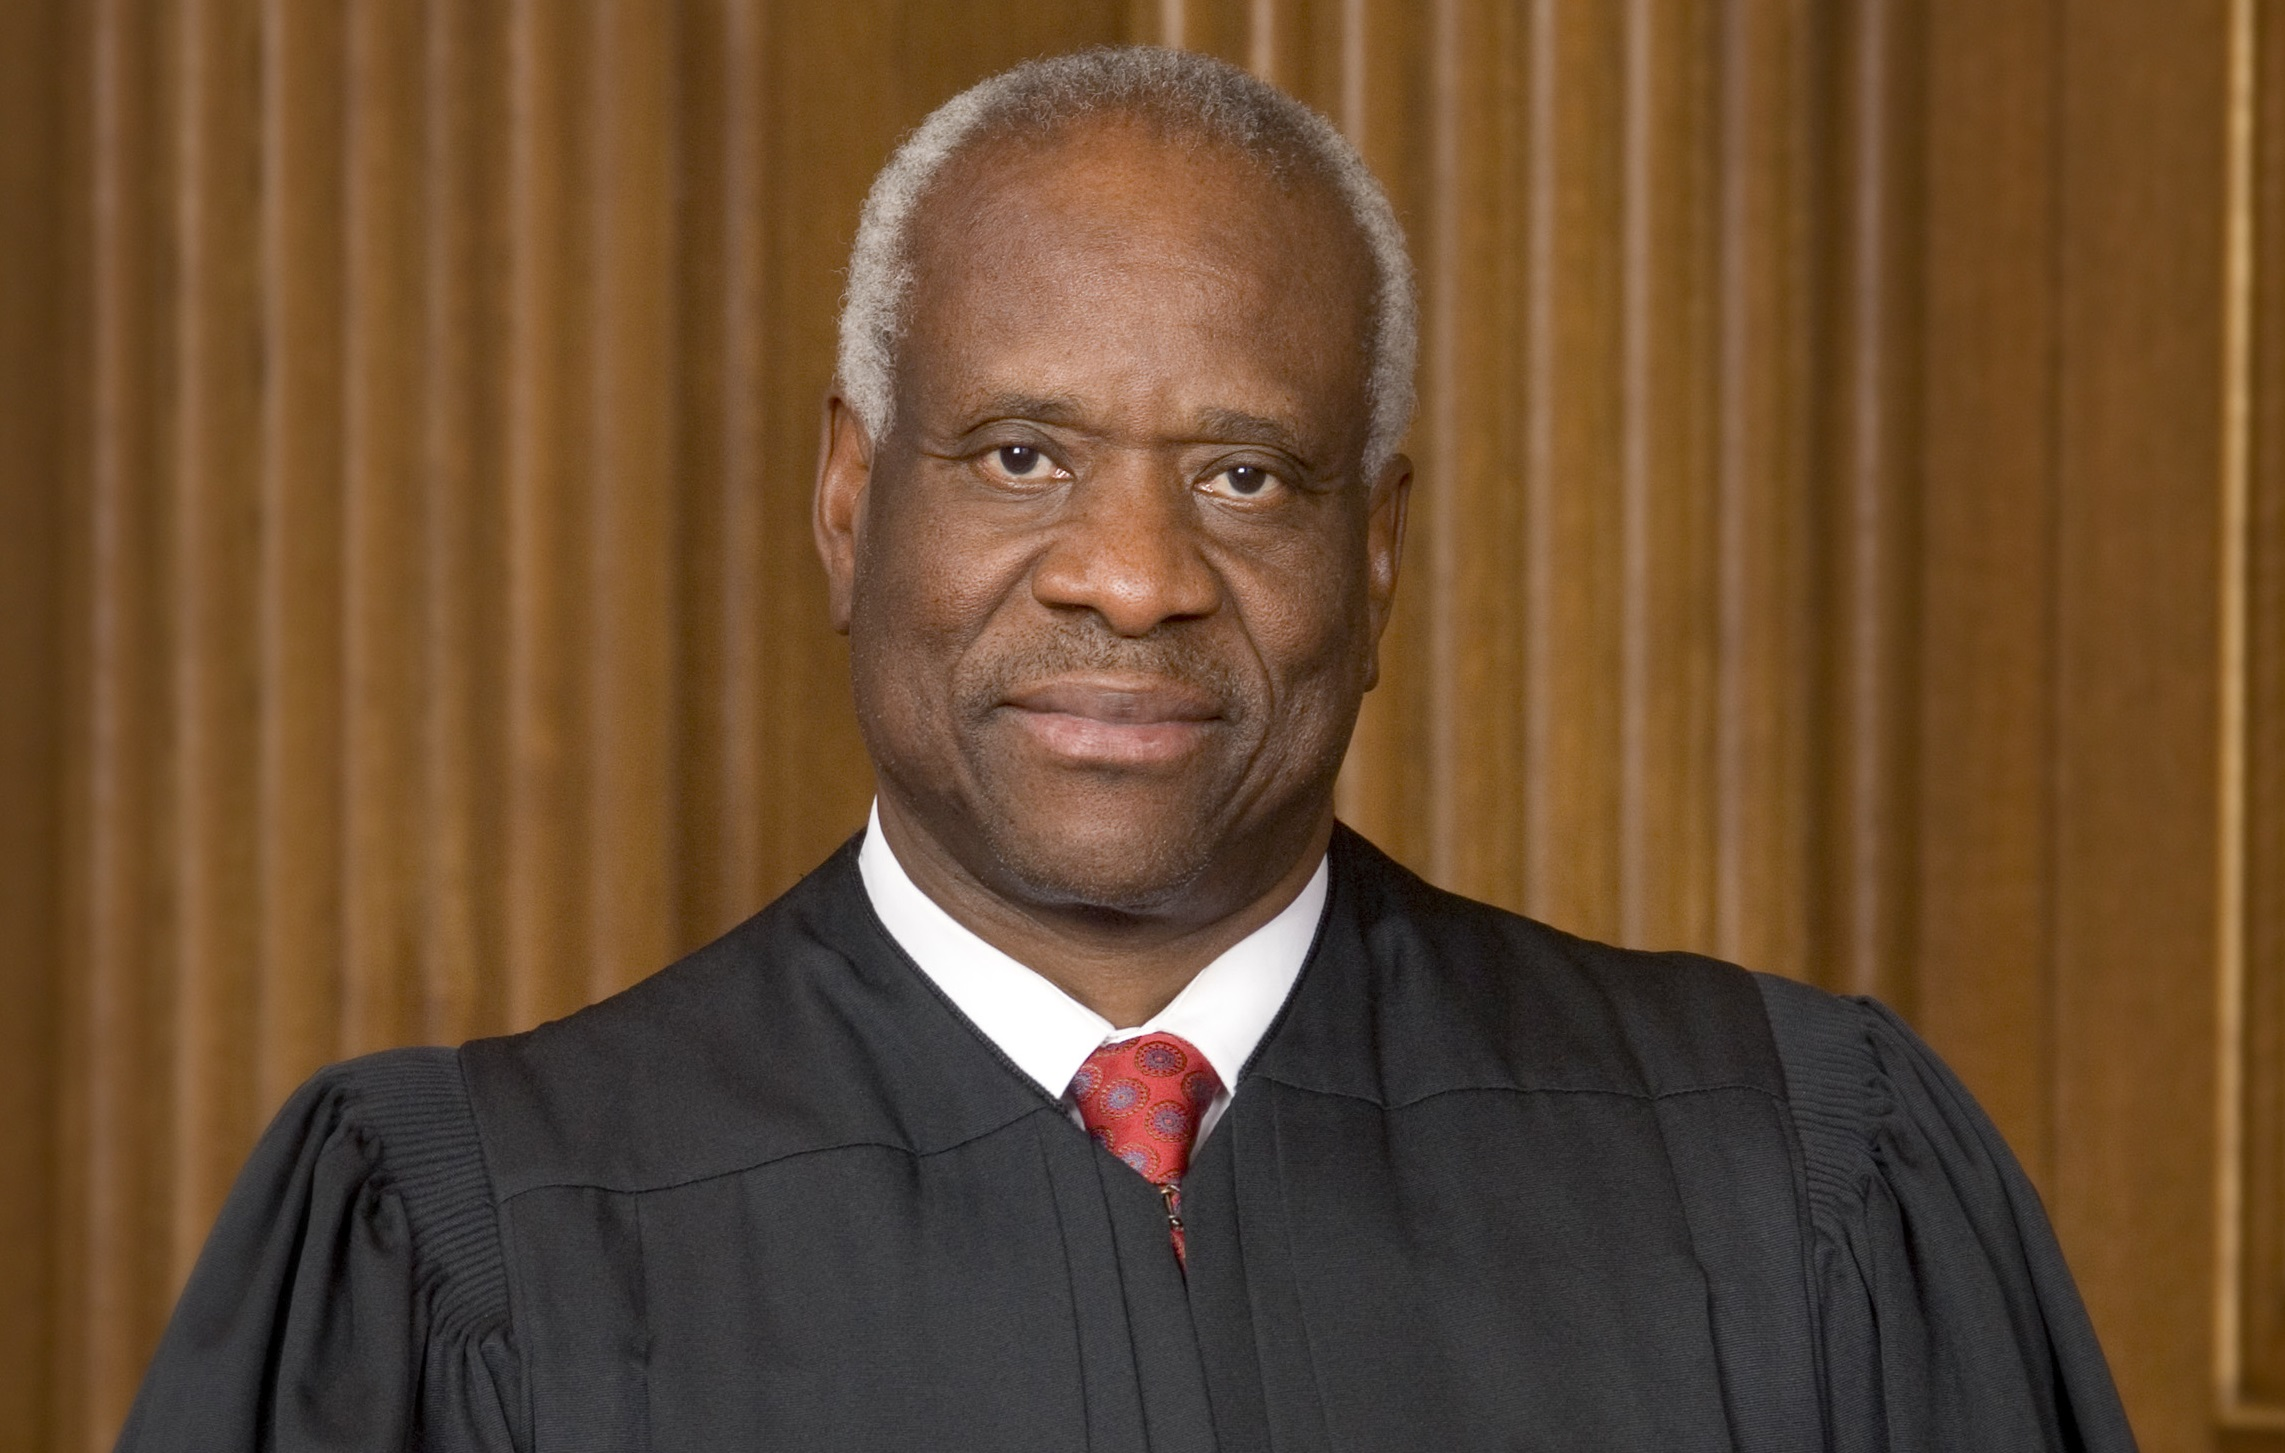 Supreme Court Justice Clarence Thomas Says Social Media Companies Do Not Have Right to Ban Protected Speech